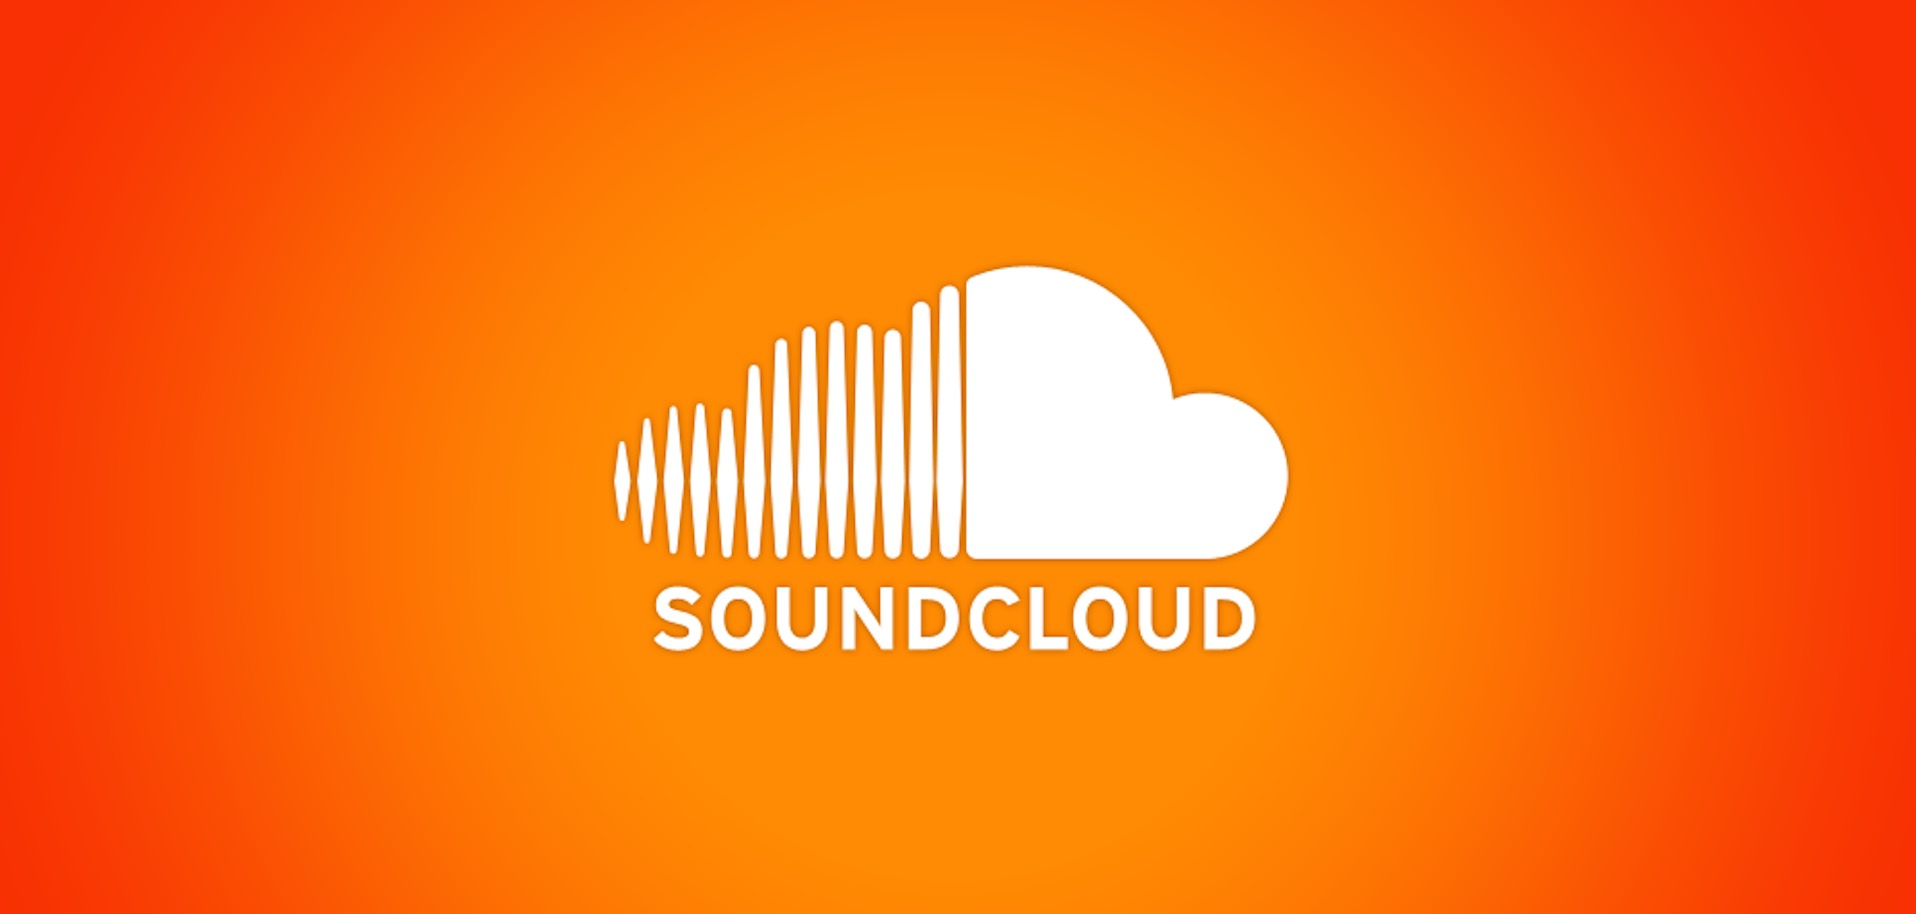 Help Promote Your Soundcloud Track